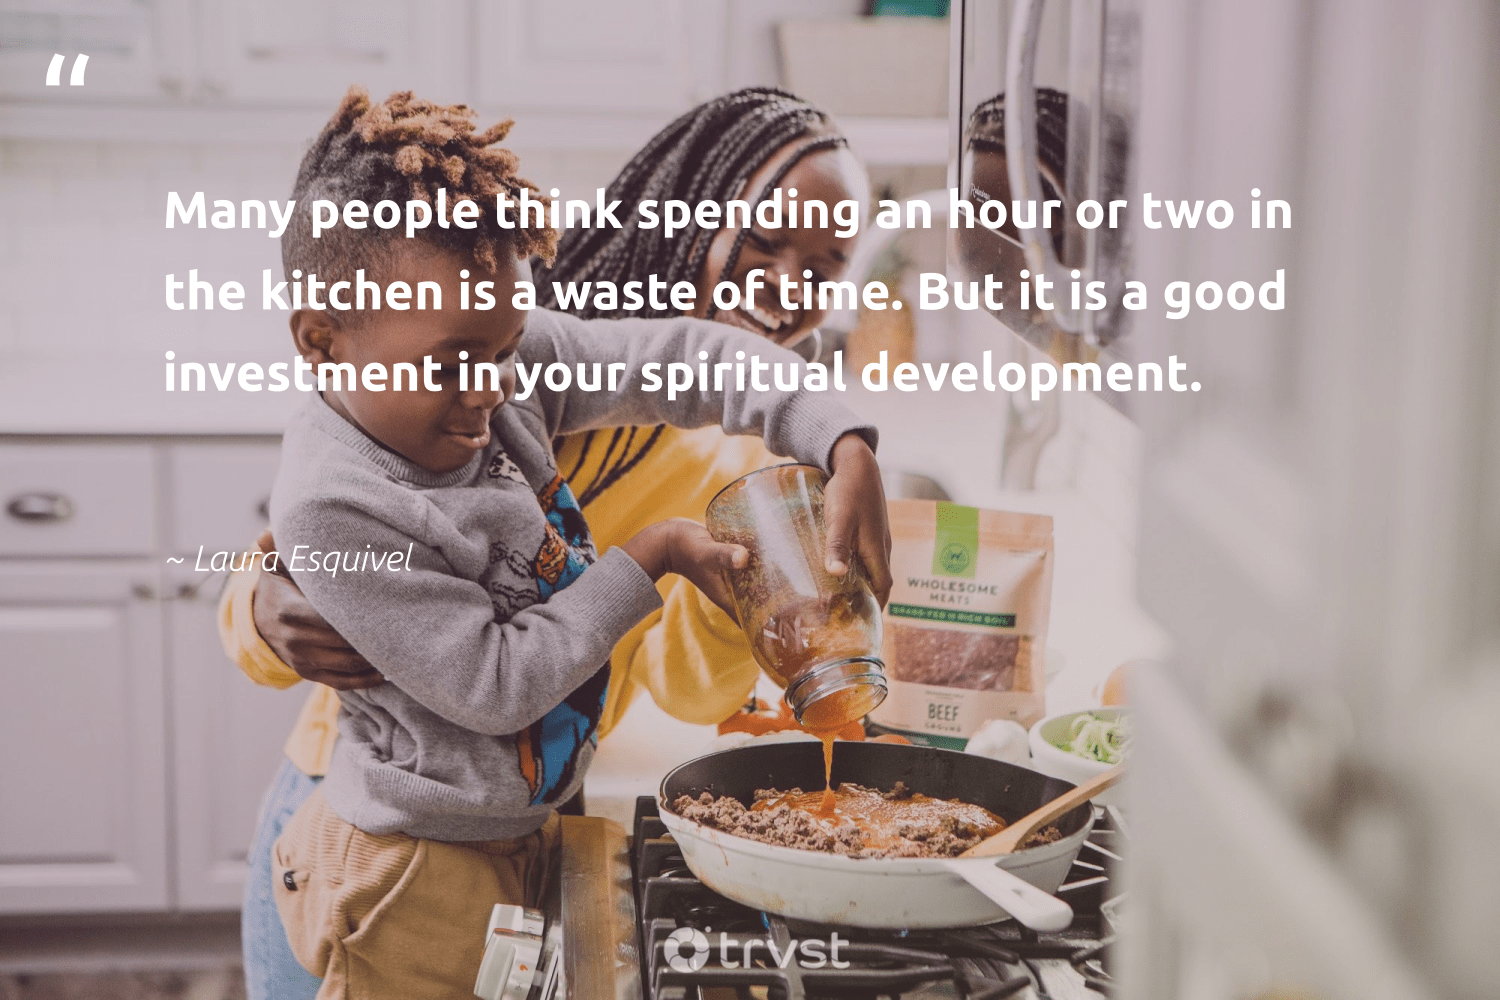 """Many people think spending an hour or two in the kitchen is a waste of time. But it is a good investment in your spiritual development.""  - Laura Esquivel #trvst #quotes #waste #spiritual #development #changemakers #collectiveaction #health #dotherightthing #mindset #bethechange #begreat"